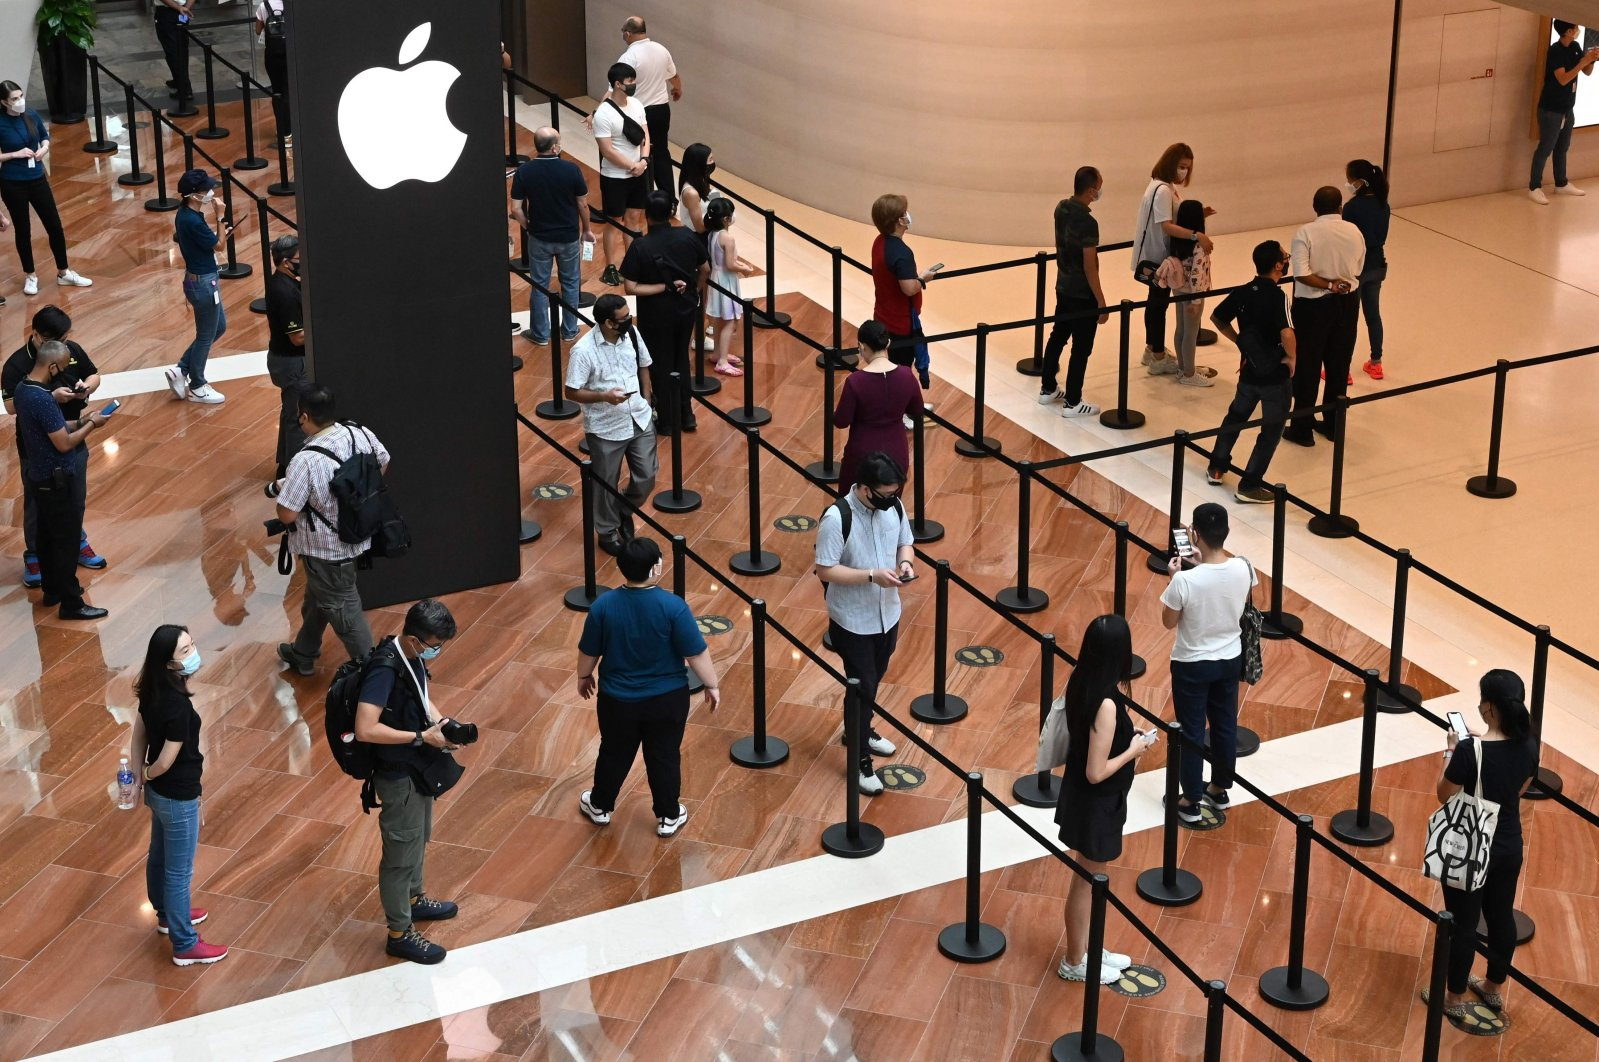 People queue to enter Apple's third retail store at Marina Bay Sands shop in Singapore, Sept. 10, 2020. (AFP Photo)